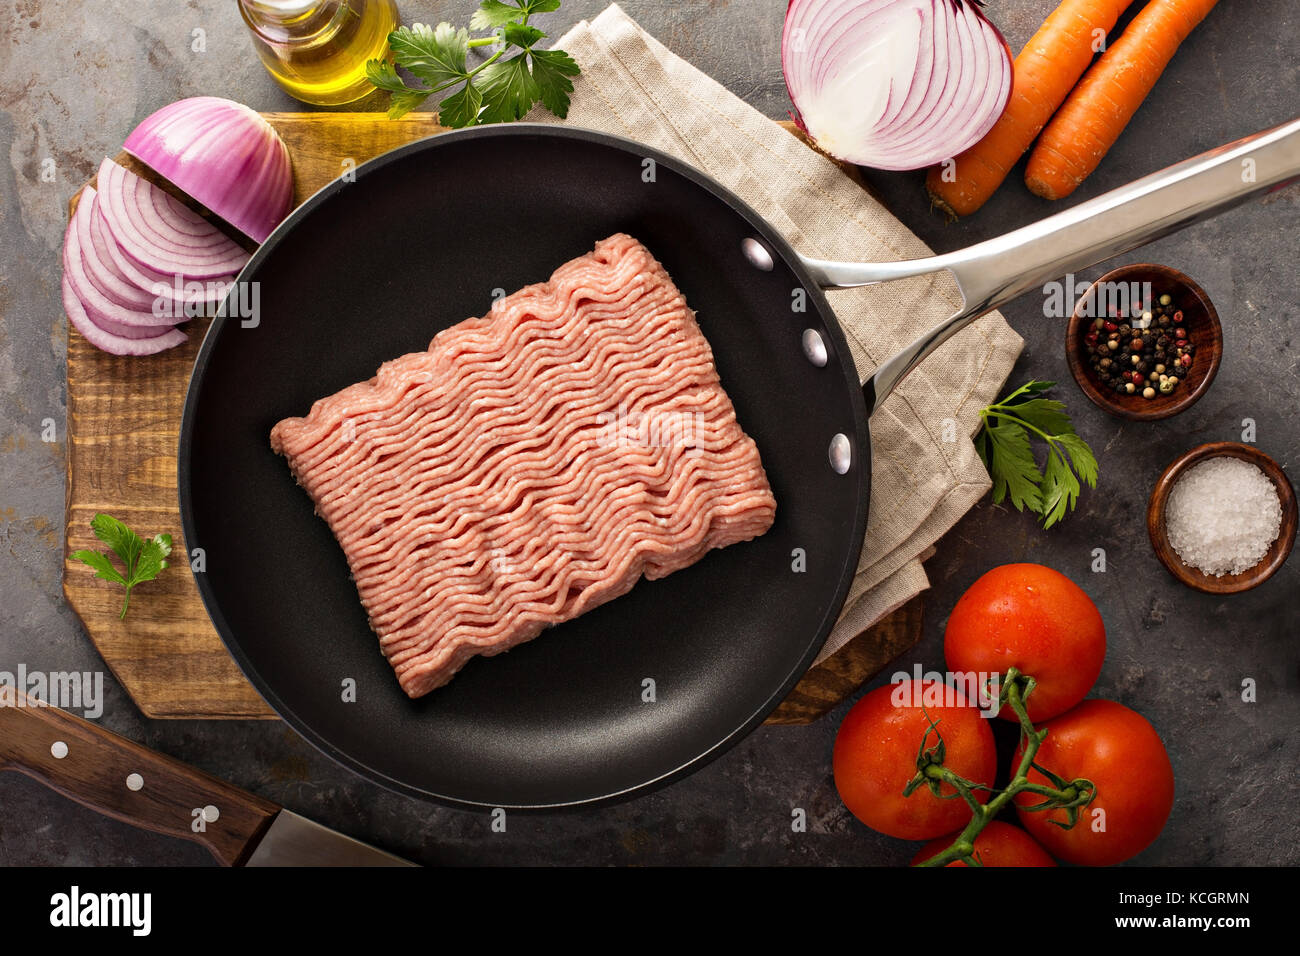 Cooking with ground turkey - Stock Image